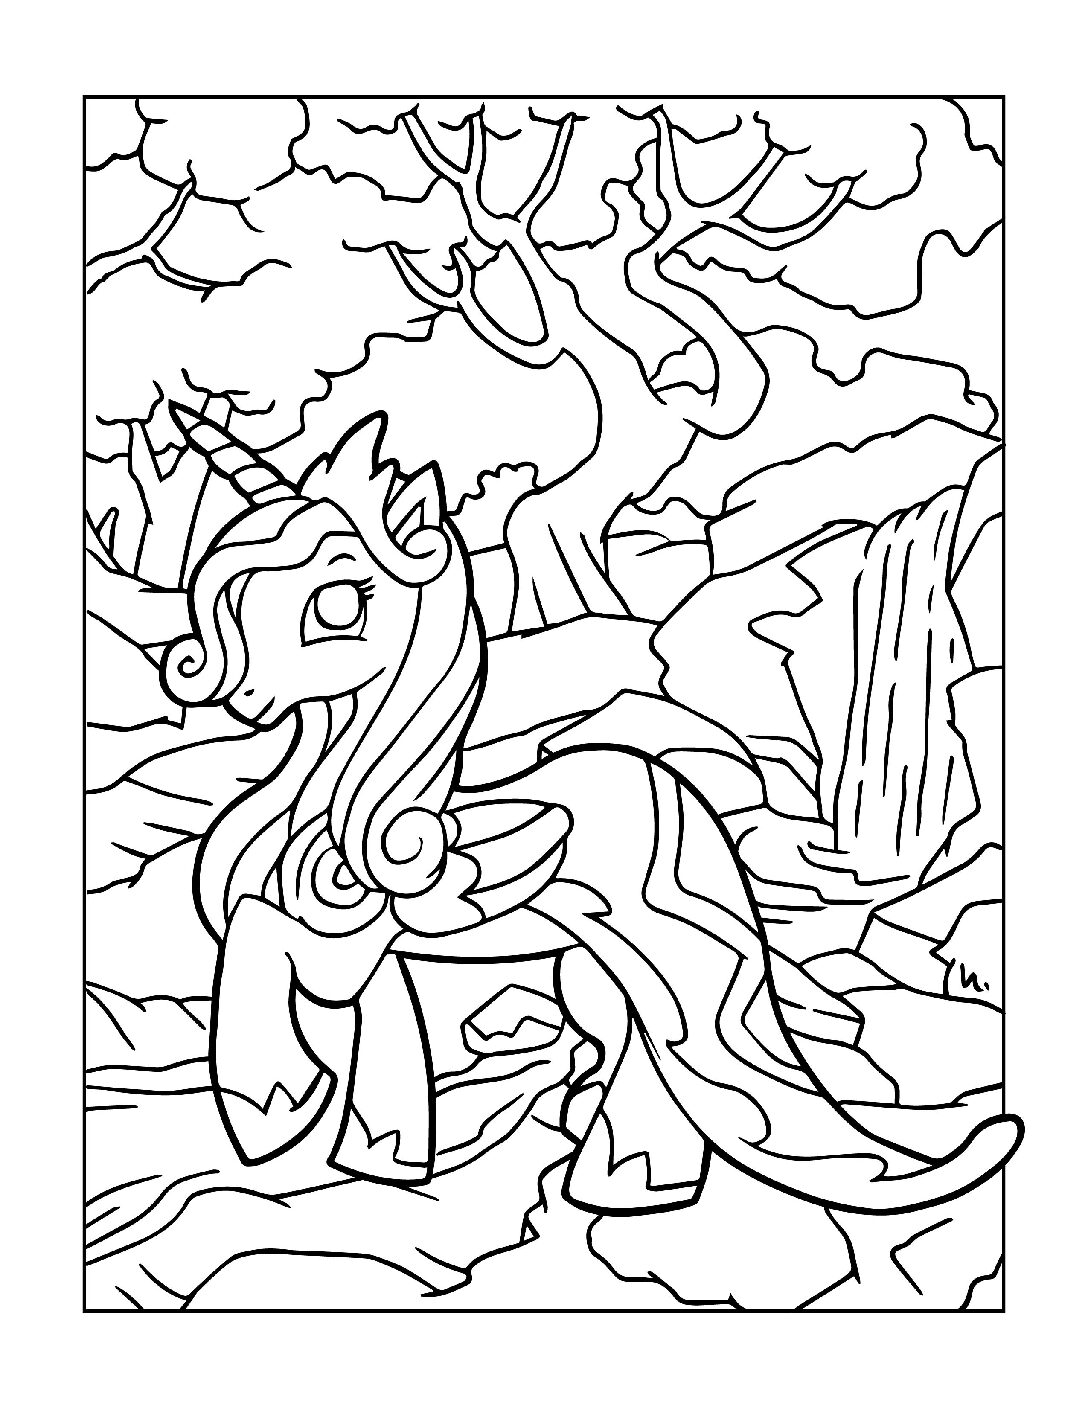 Coloring-Pages-Unicorns-10-pdf Free Printable Unicorn Colouring Pages